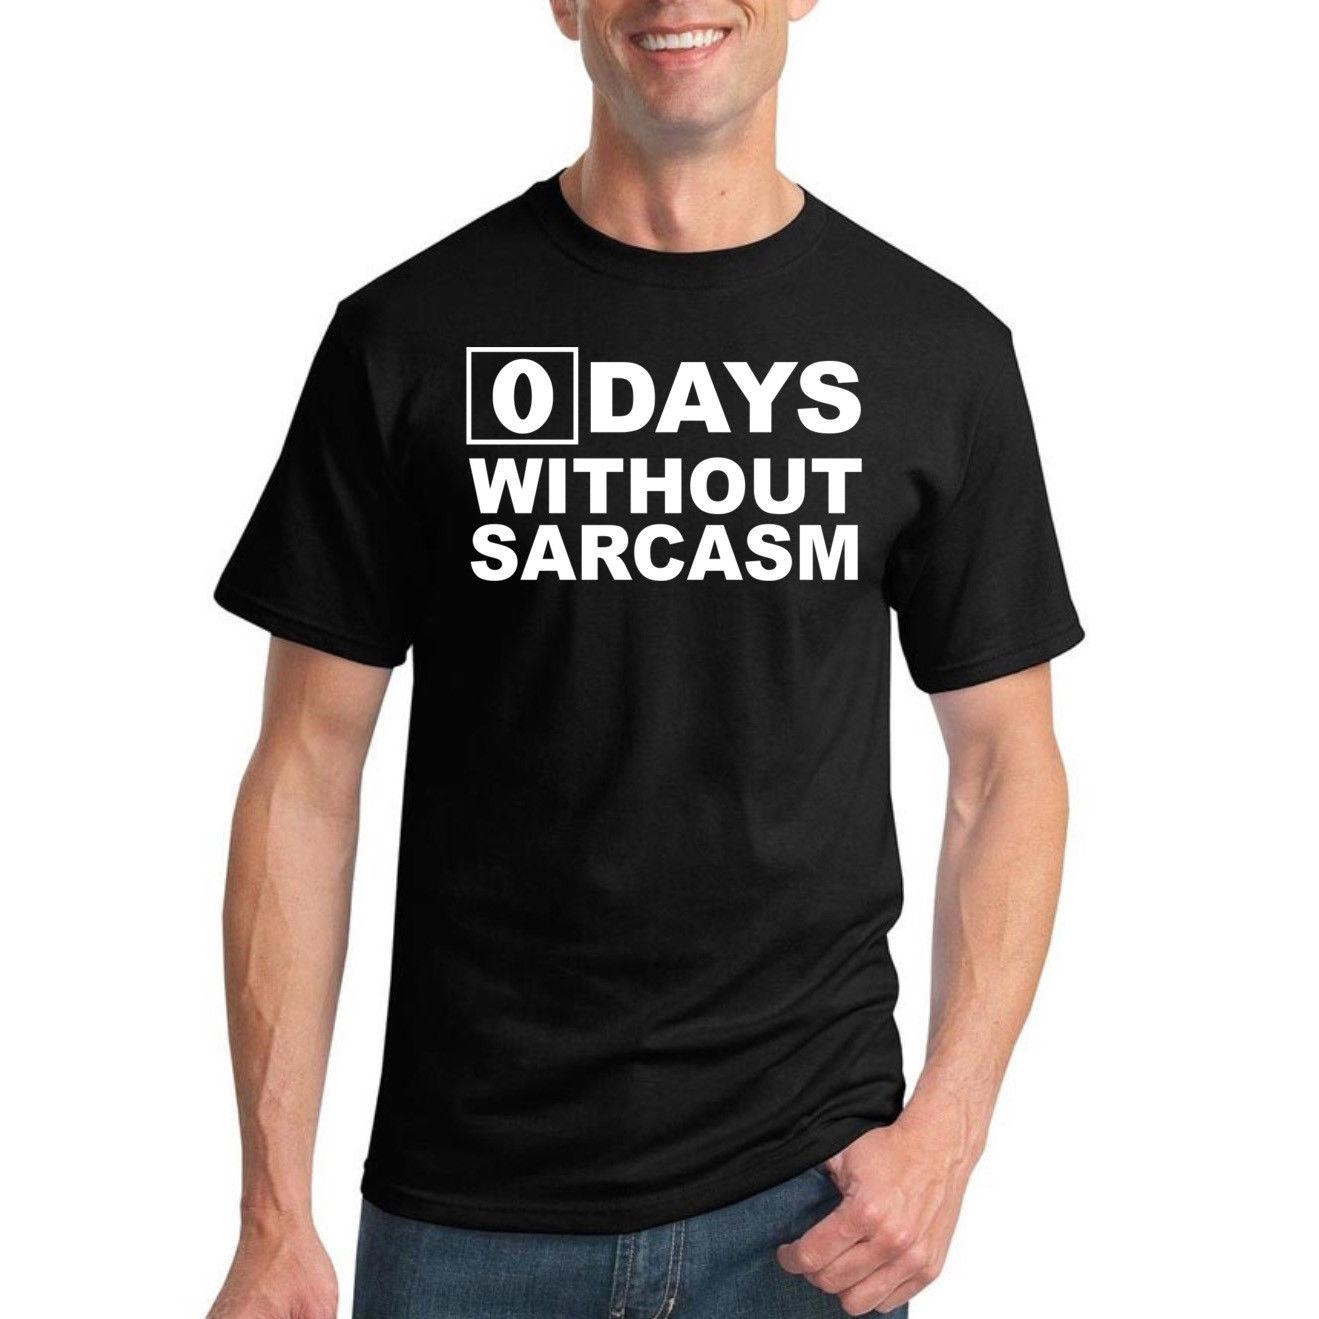 772cbe15c Zero Days Without Sarcasm Mens Graphic Humor T Shirt Funny Novelty Tee  Wholesale 2018 Funny Tee Cute T Shirts Man 100% Cotton Cool T Shirts Online  Shopping ...